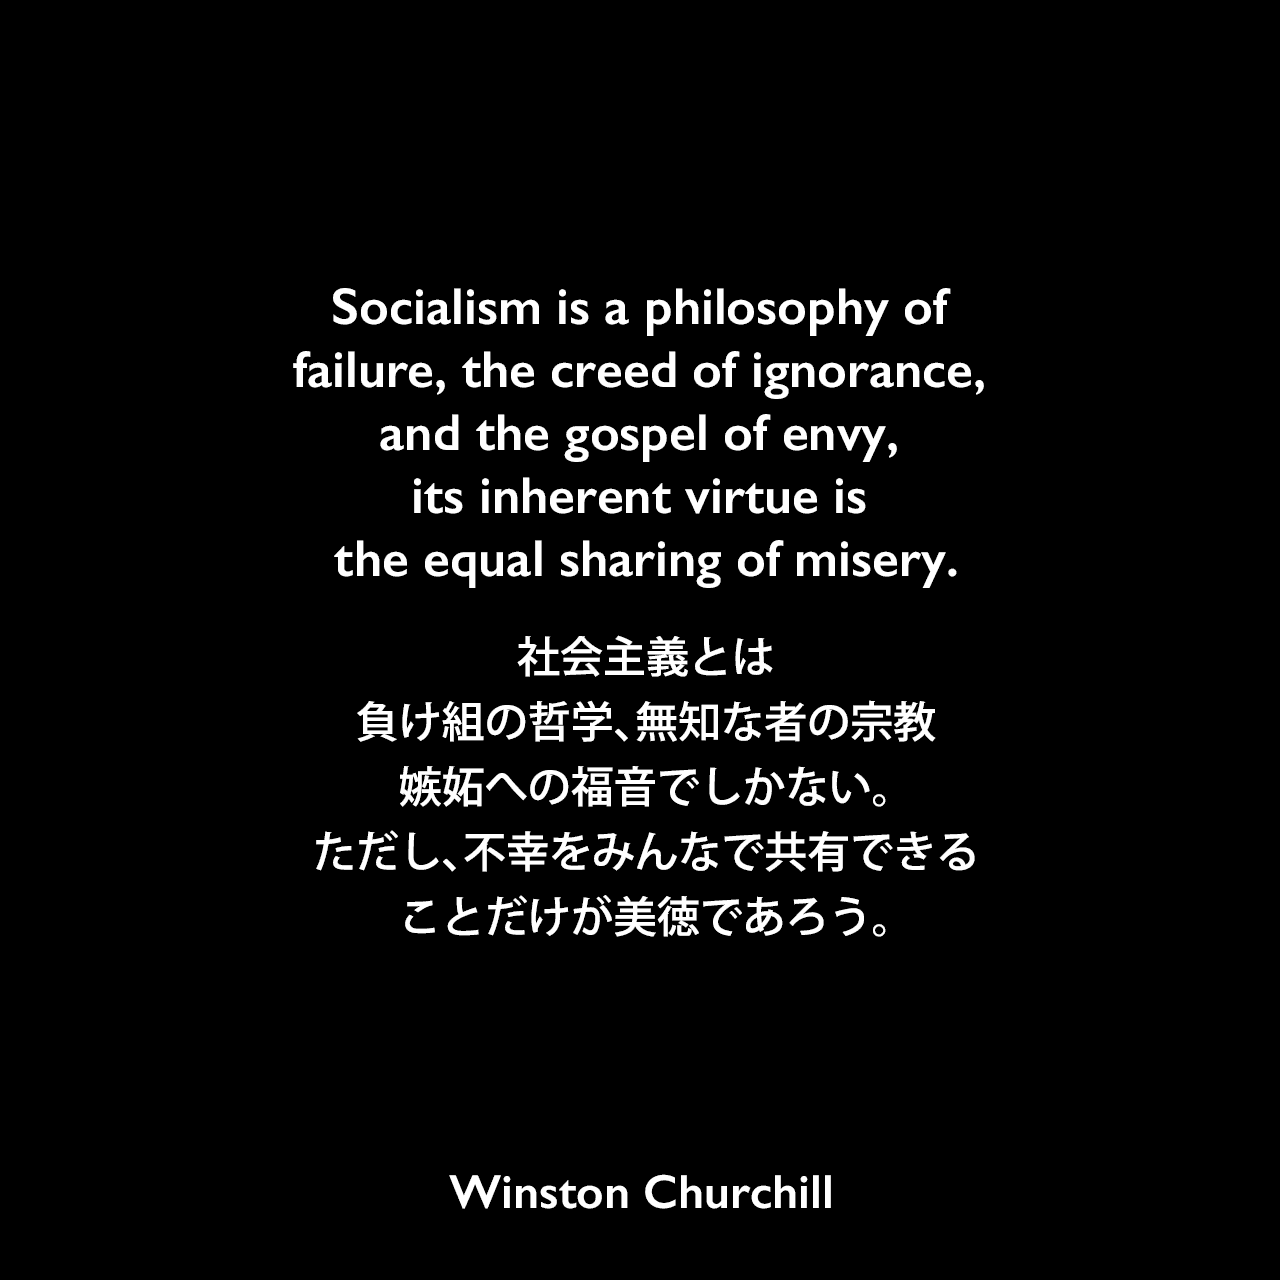 Socialism is a philosophy of failure, the creed of ignorance, and the gospel of envy, its inherent virtue is the equal sharing of misery.社会主義とは負け組の哲学、無知な者の宗教、嫉妬への福音でしかない。ただし、不幸をみんなで共有できることだけが美徳であろう。Winston Churchill